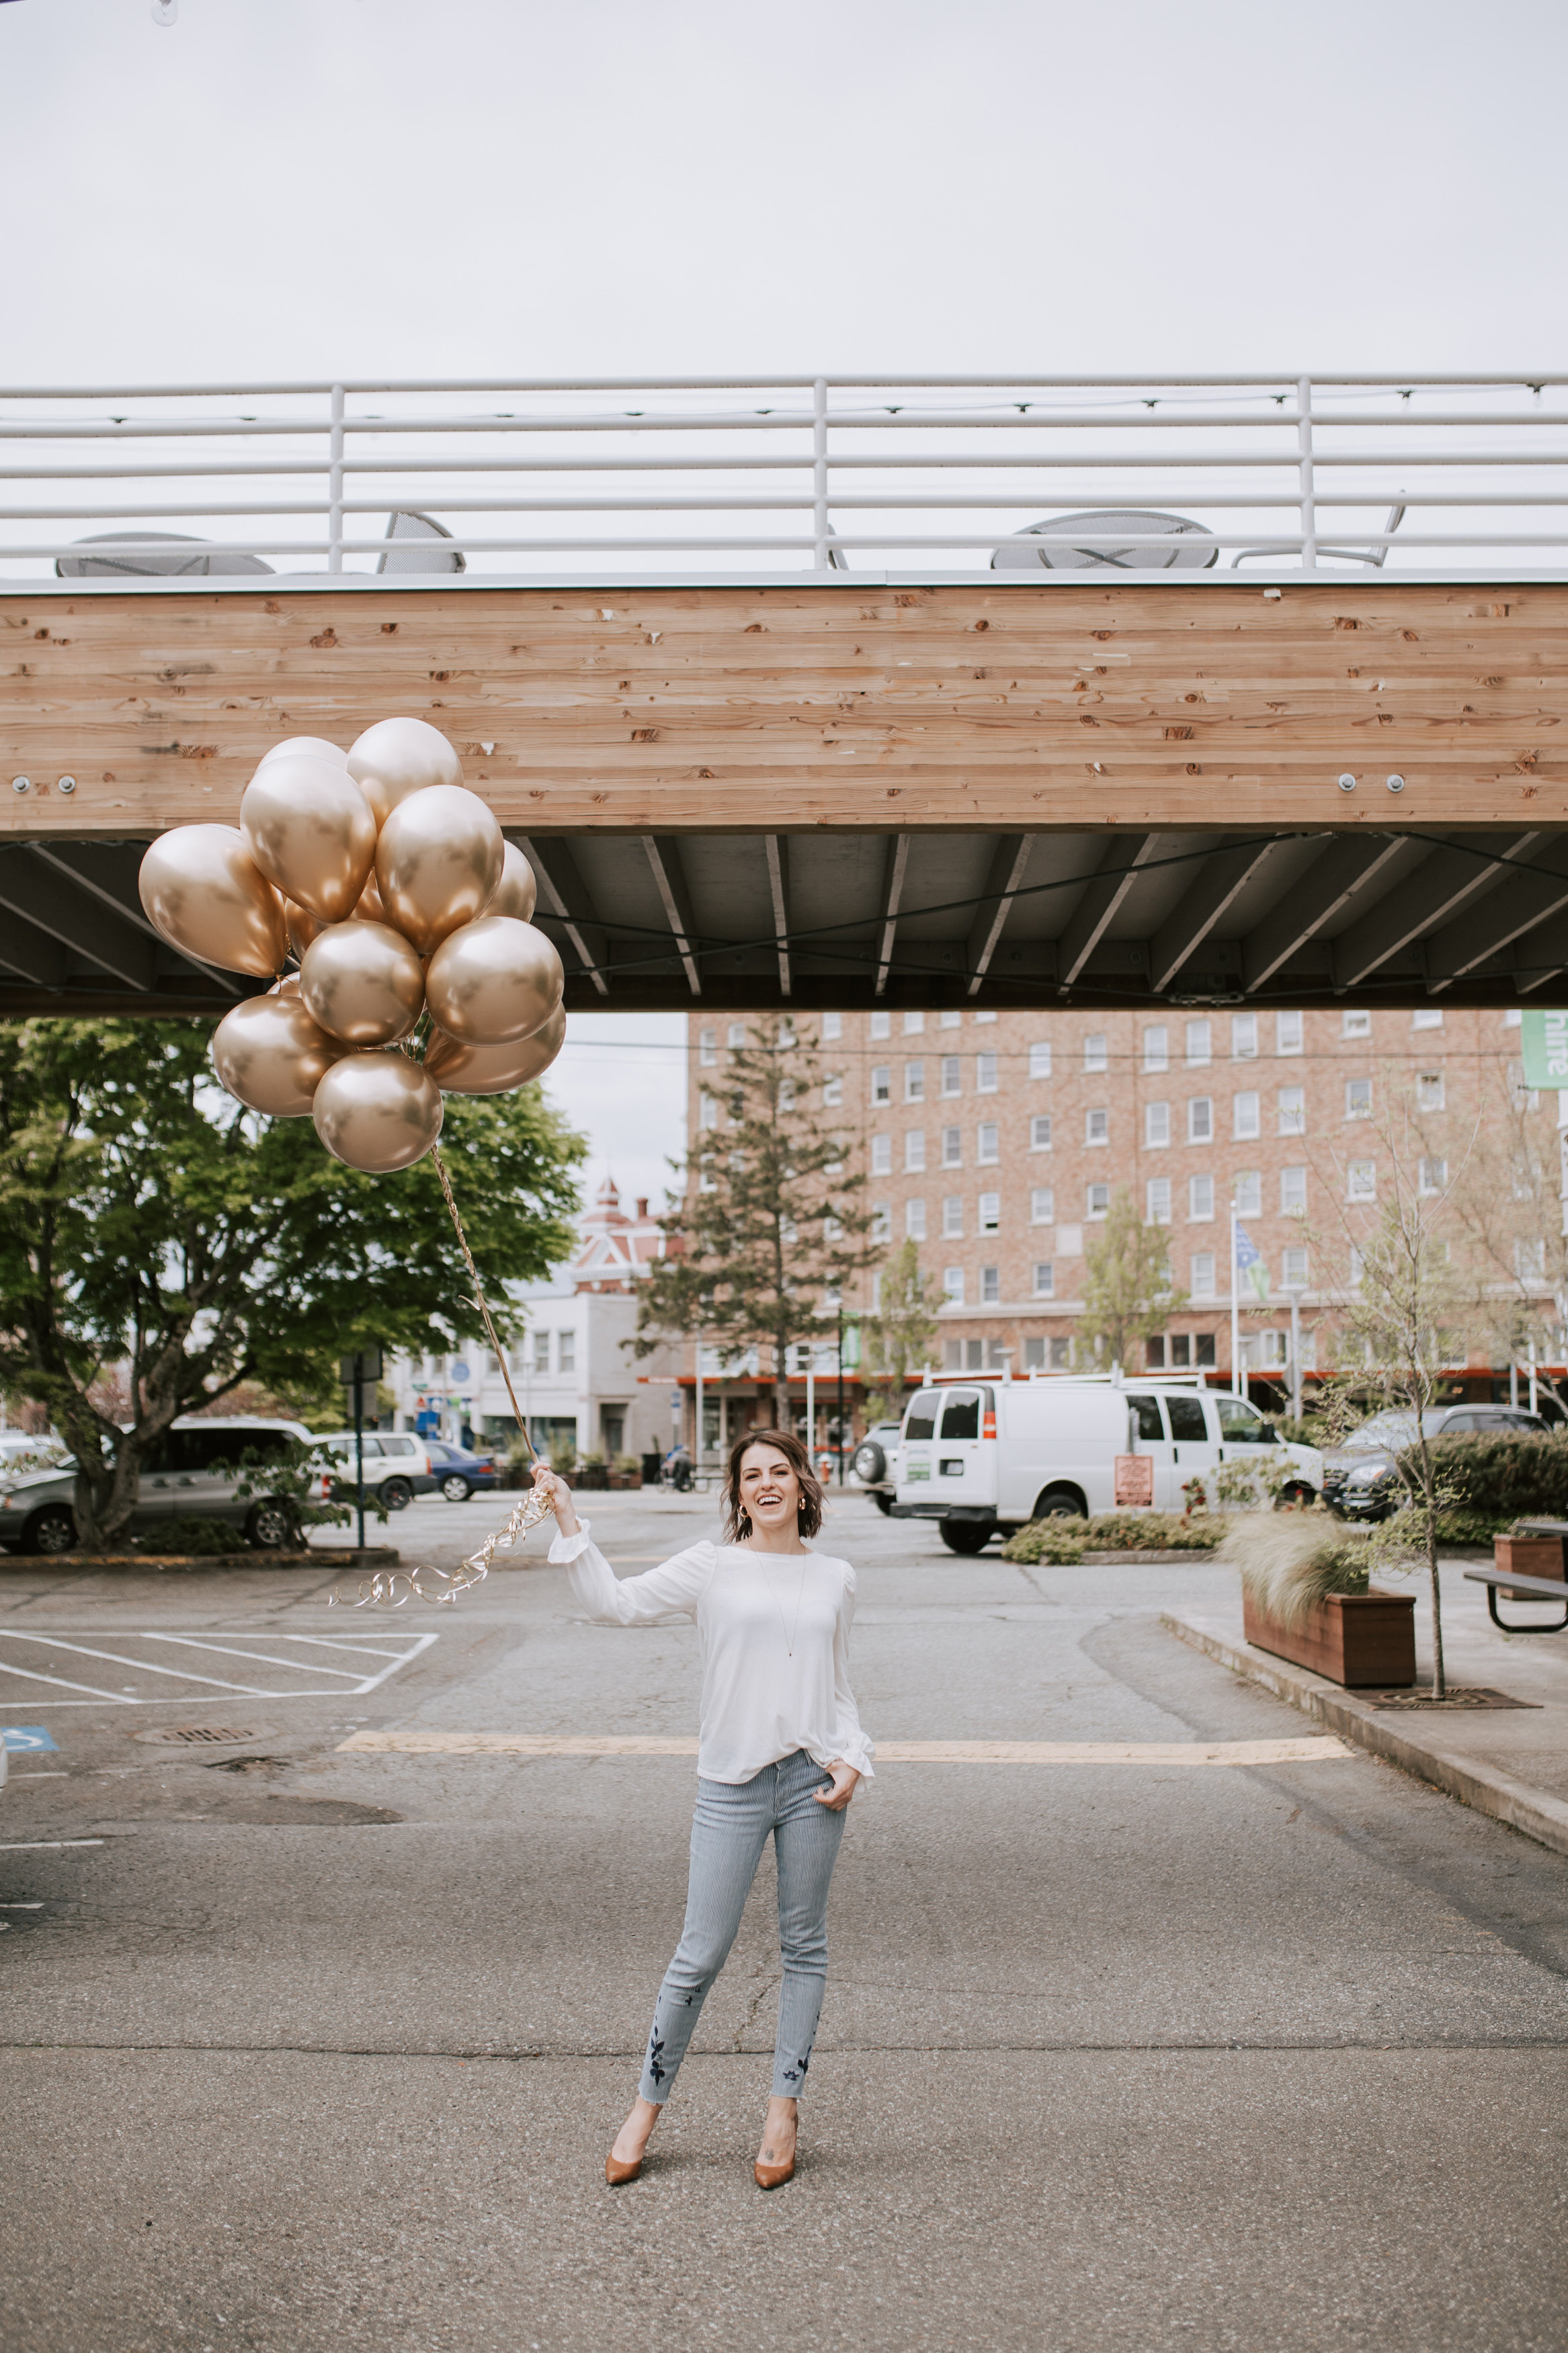 Bellingham Fashion, Shop Spruce, Balloons, Calligraphy